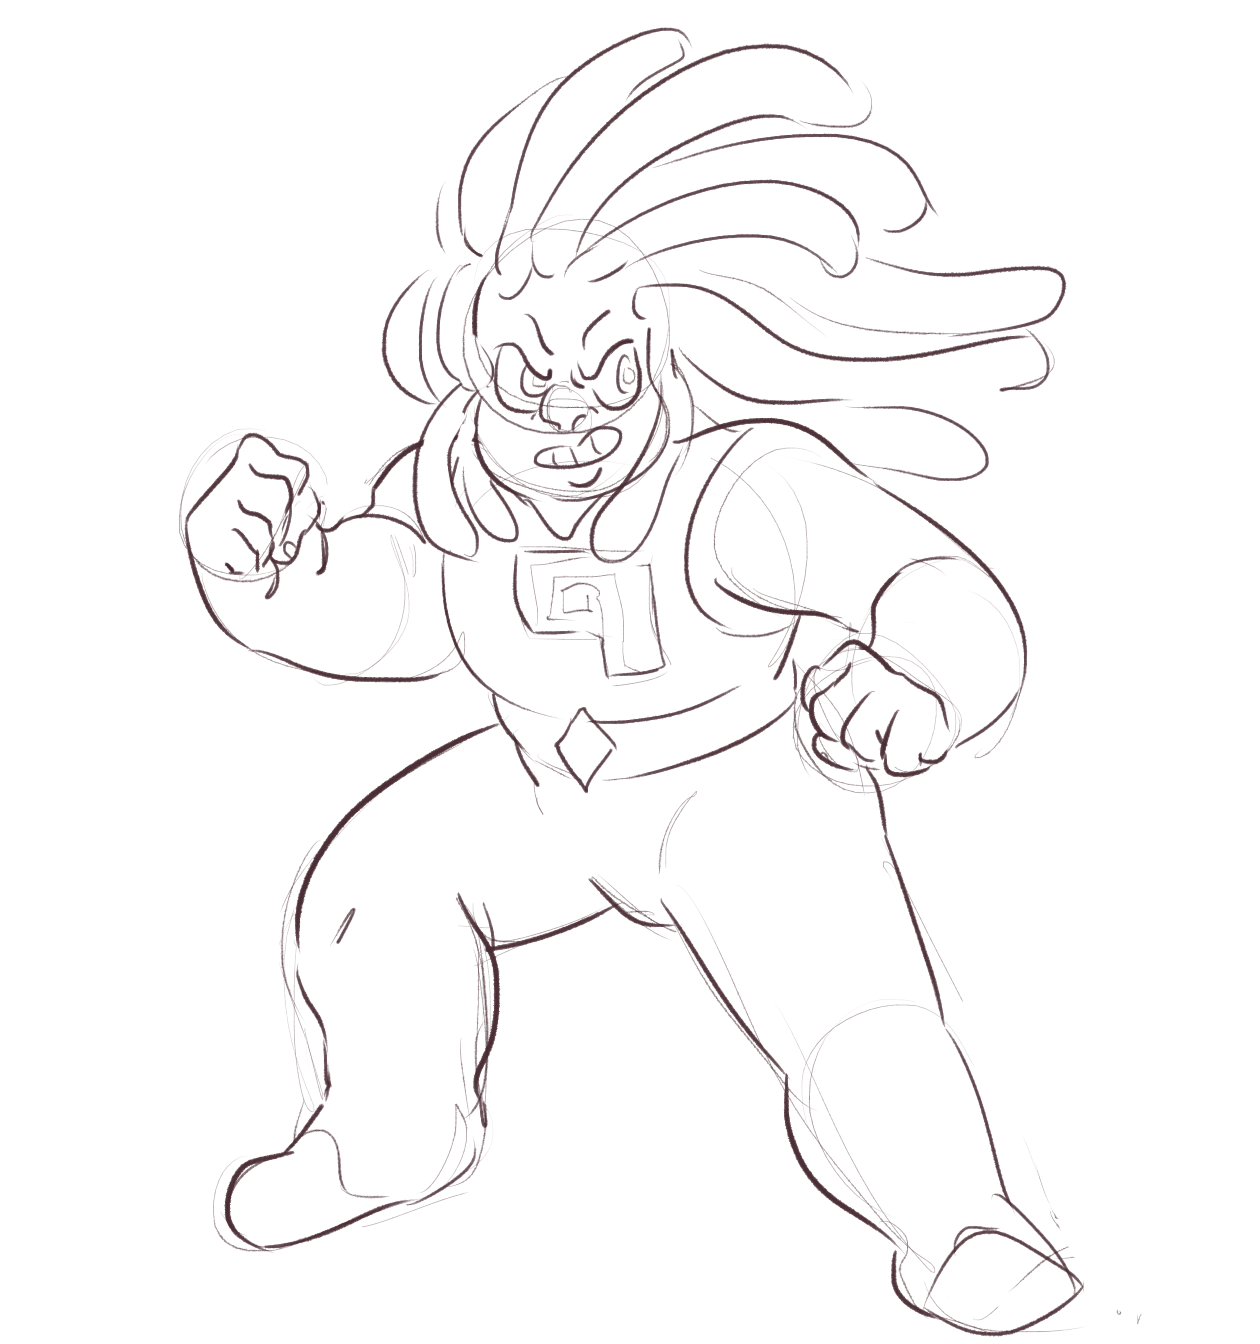 quick bismuth(??) sketch!!!!! my hands are dying comms | patreon